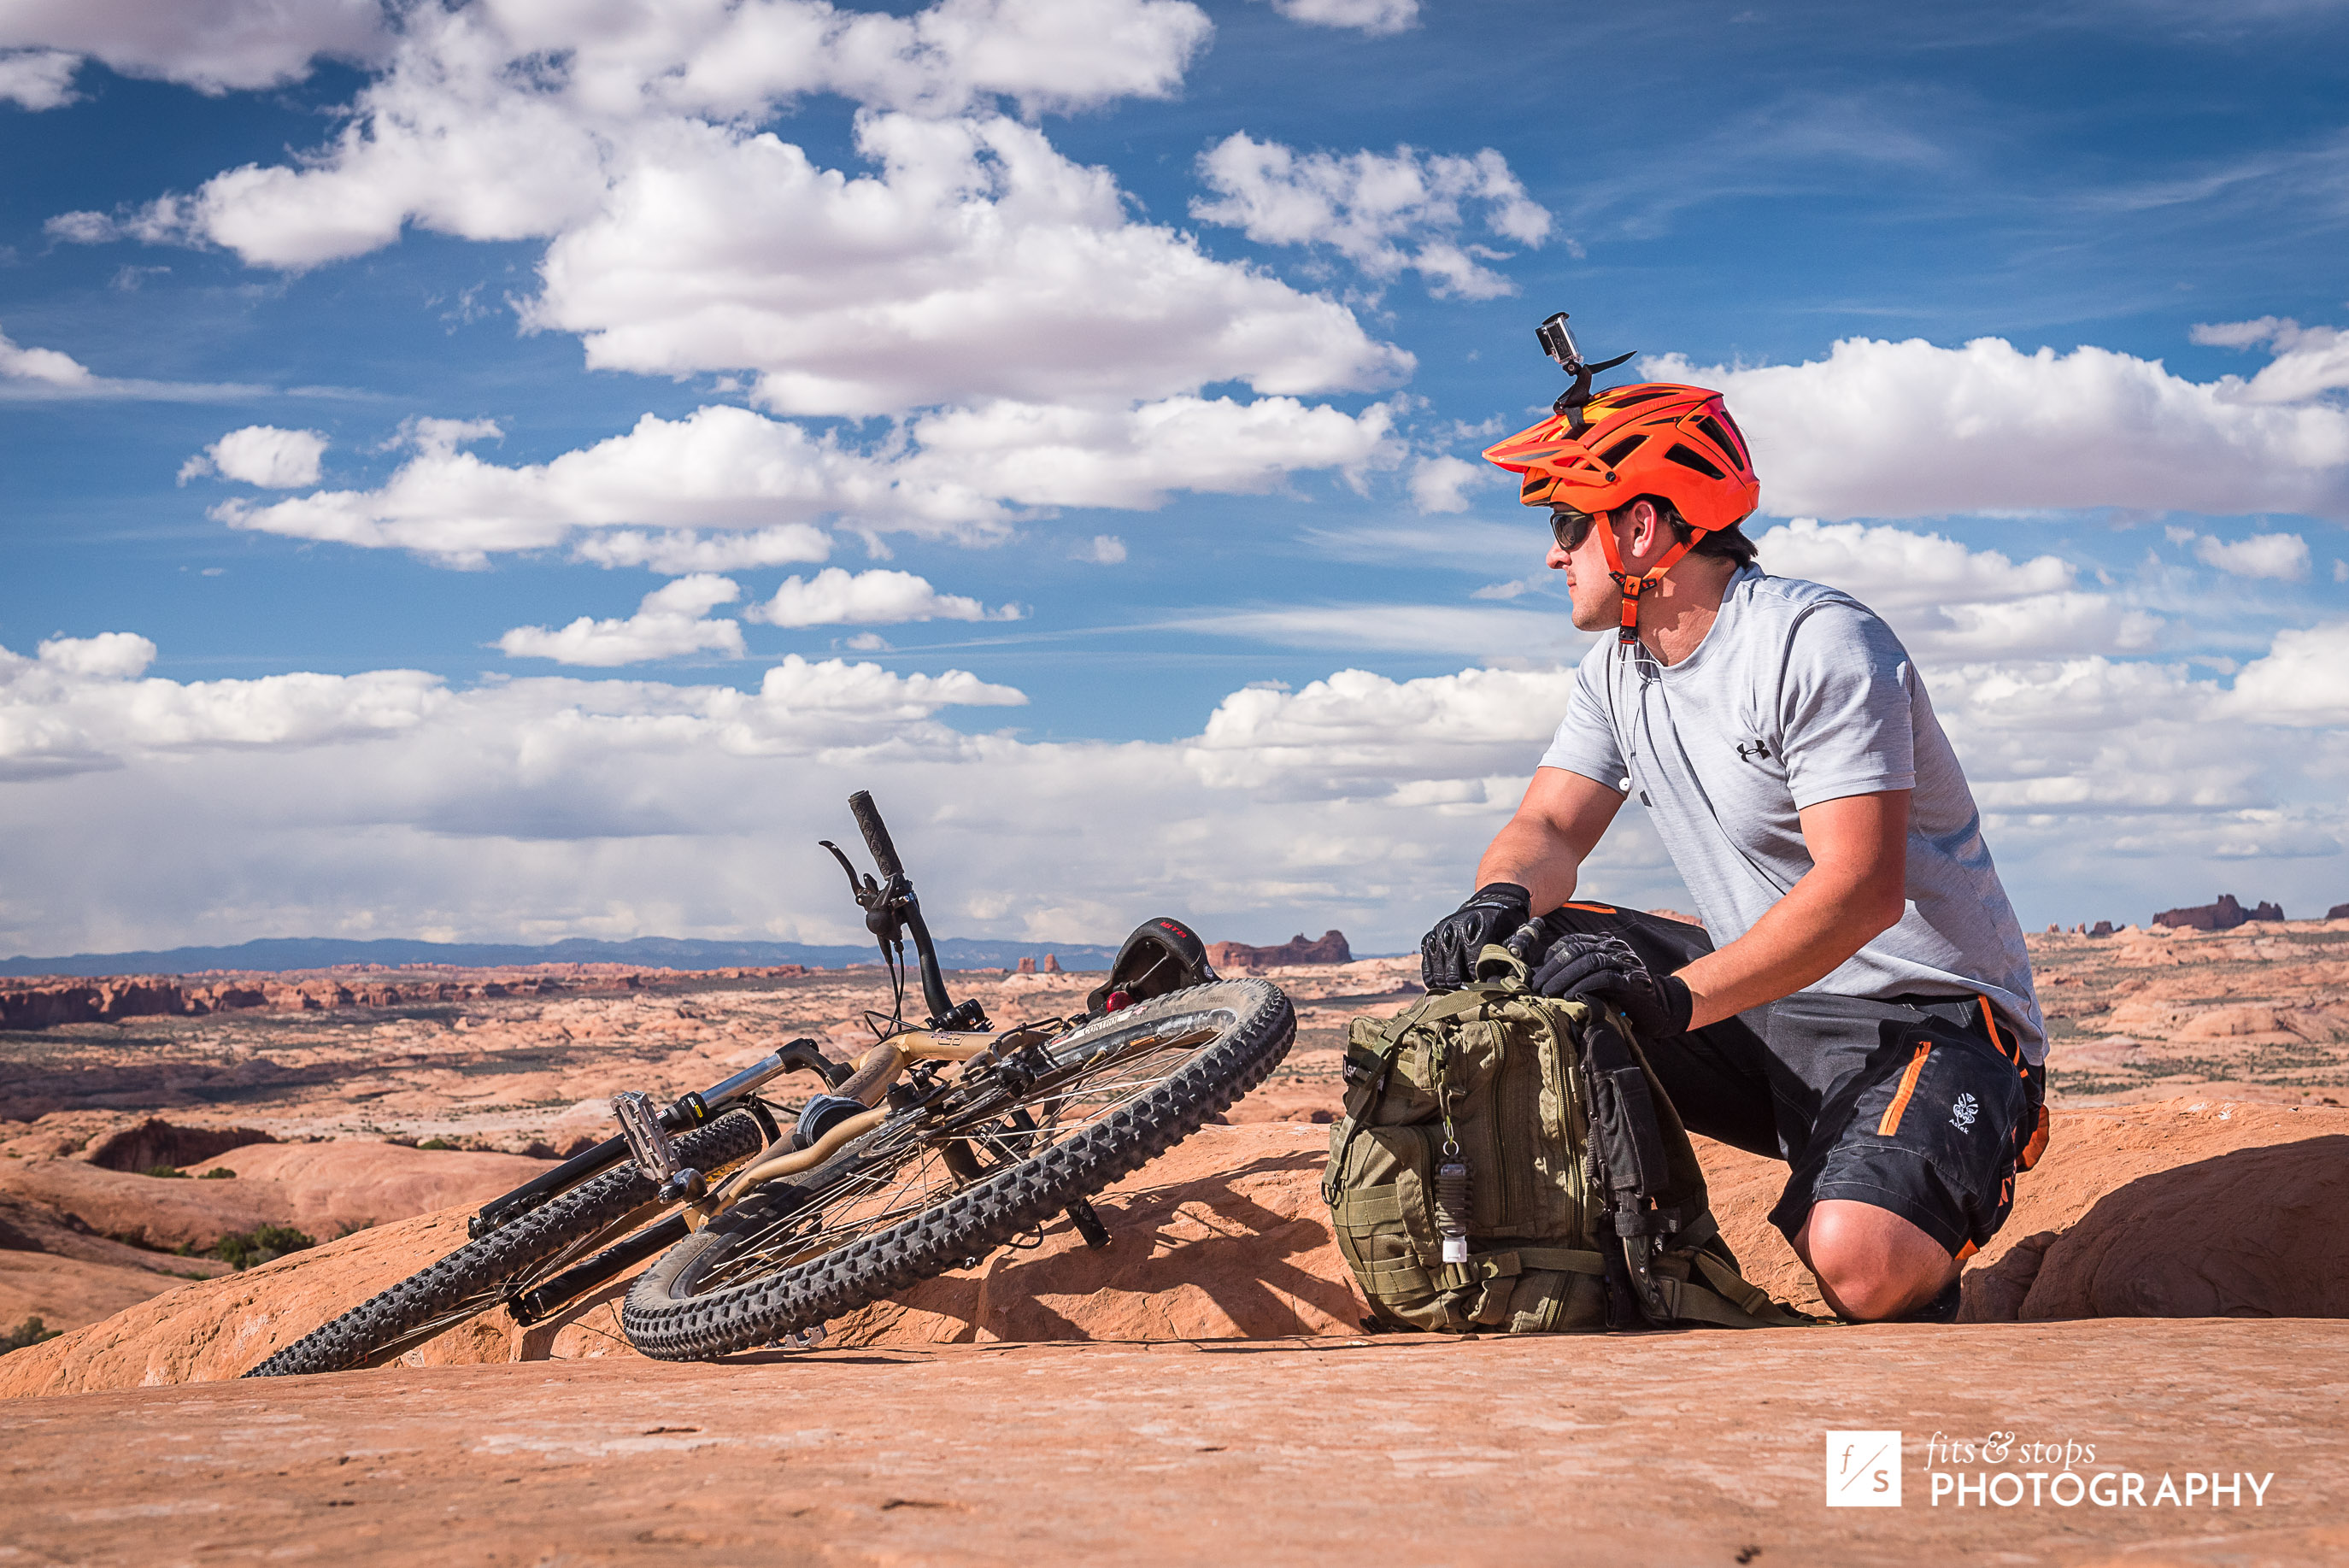 A young mountain bike rider looks out over the landscape at Slickrock Trail near Moab, Utah.